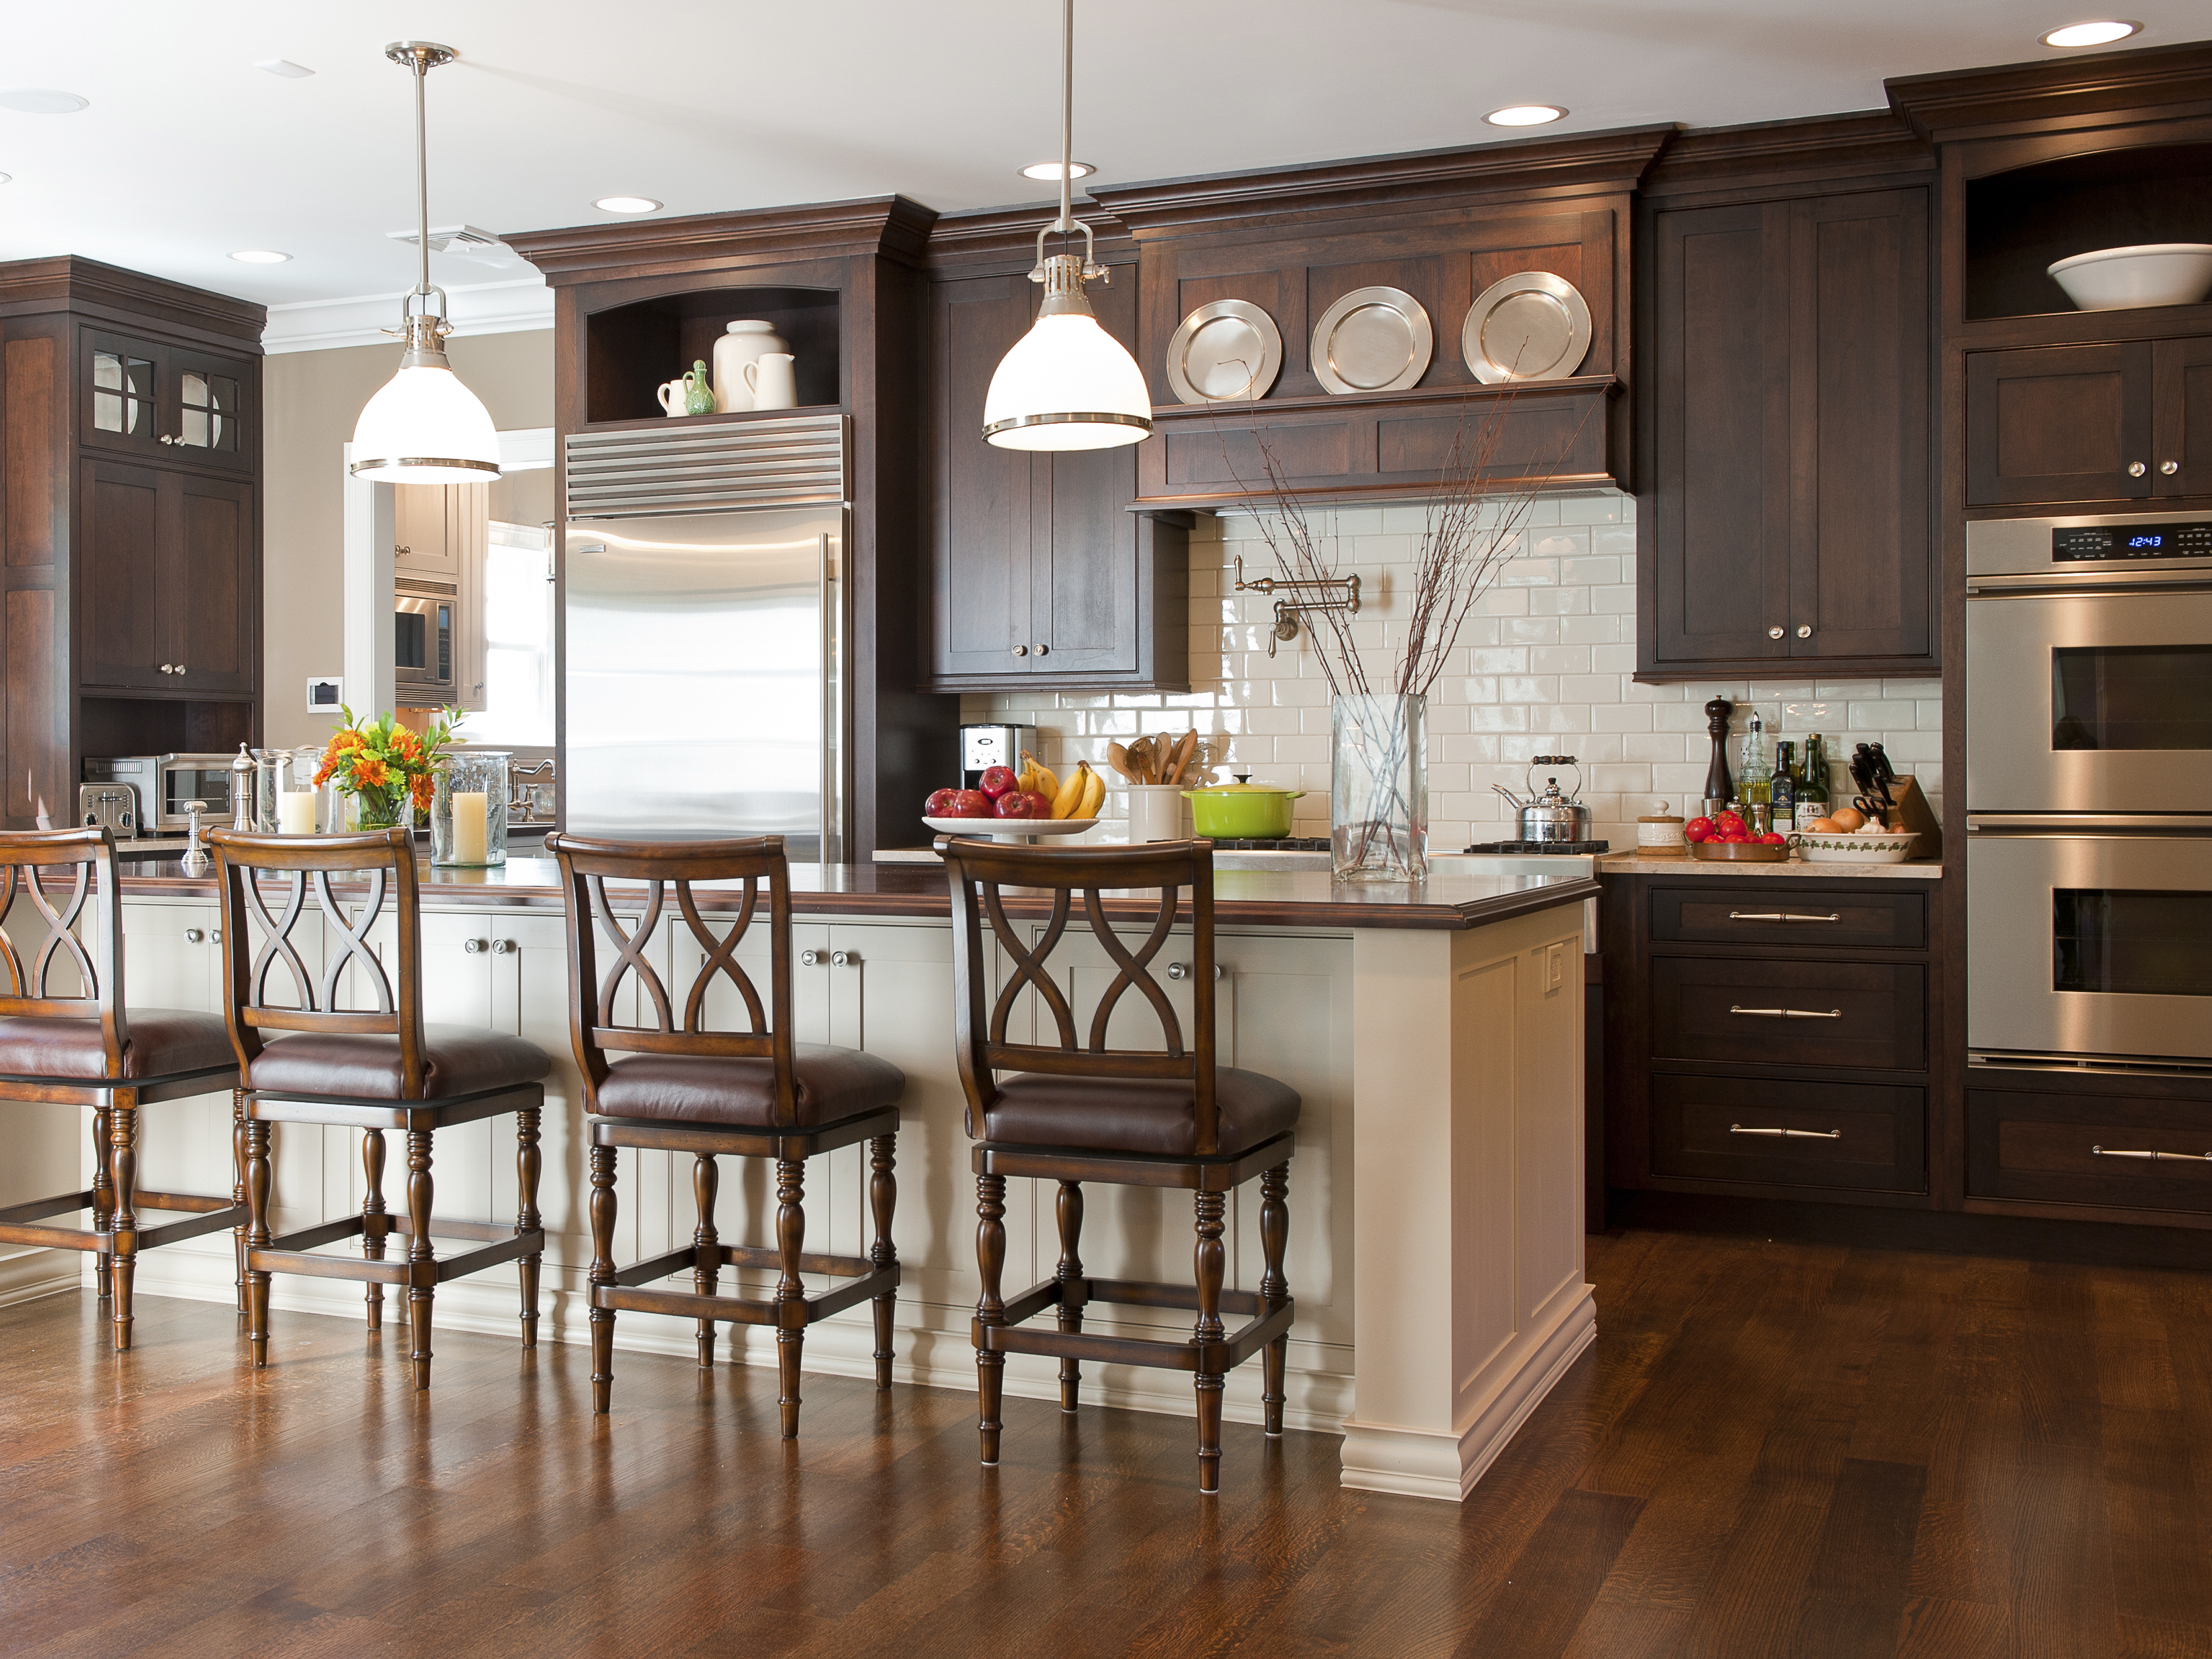 Shaker Kitchen Cabinets in Cherry Wood